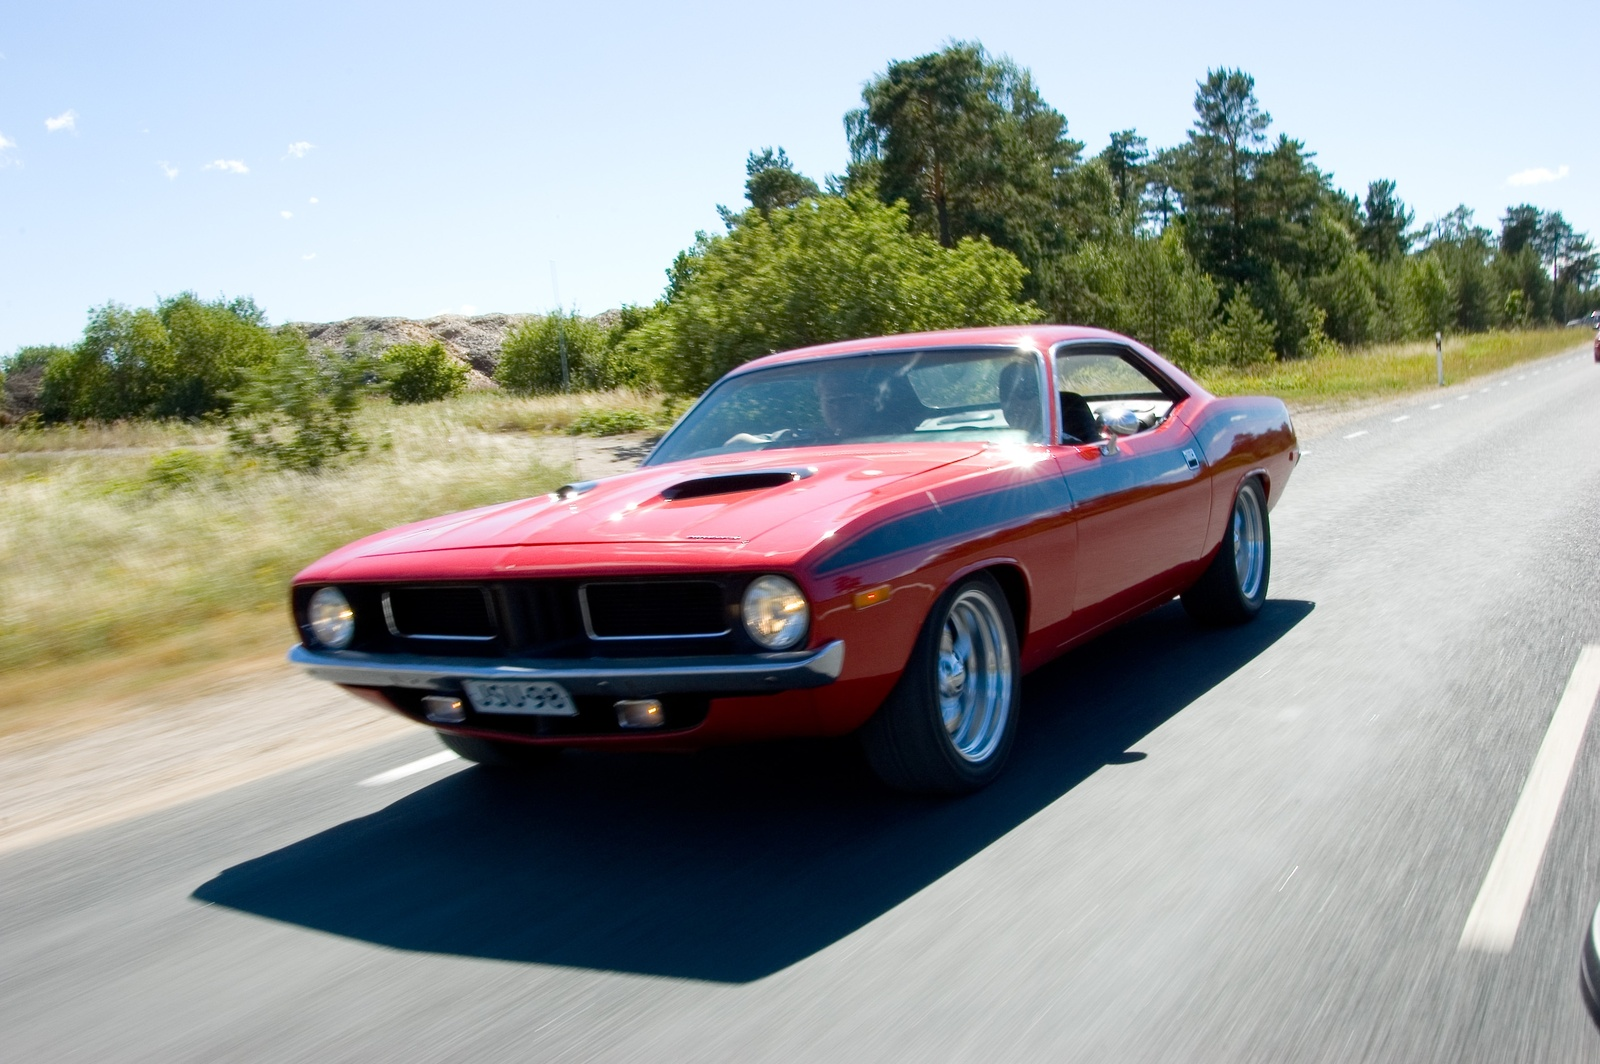 hight resolution of download plymouth barracuda 1972 9 jpg